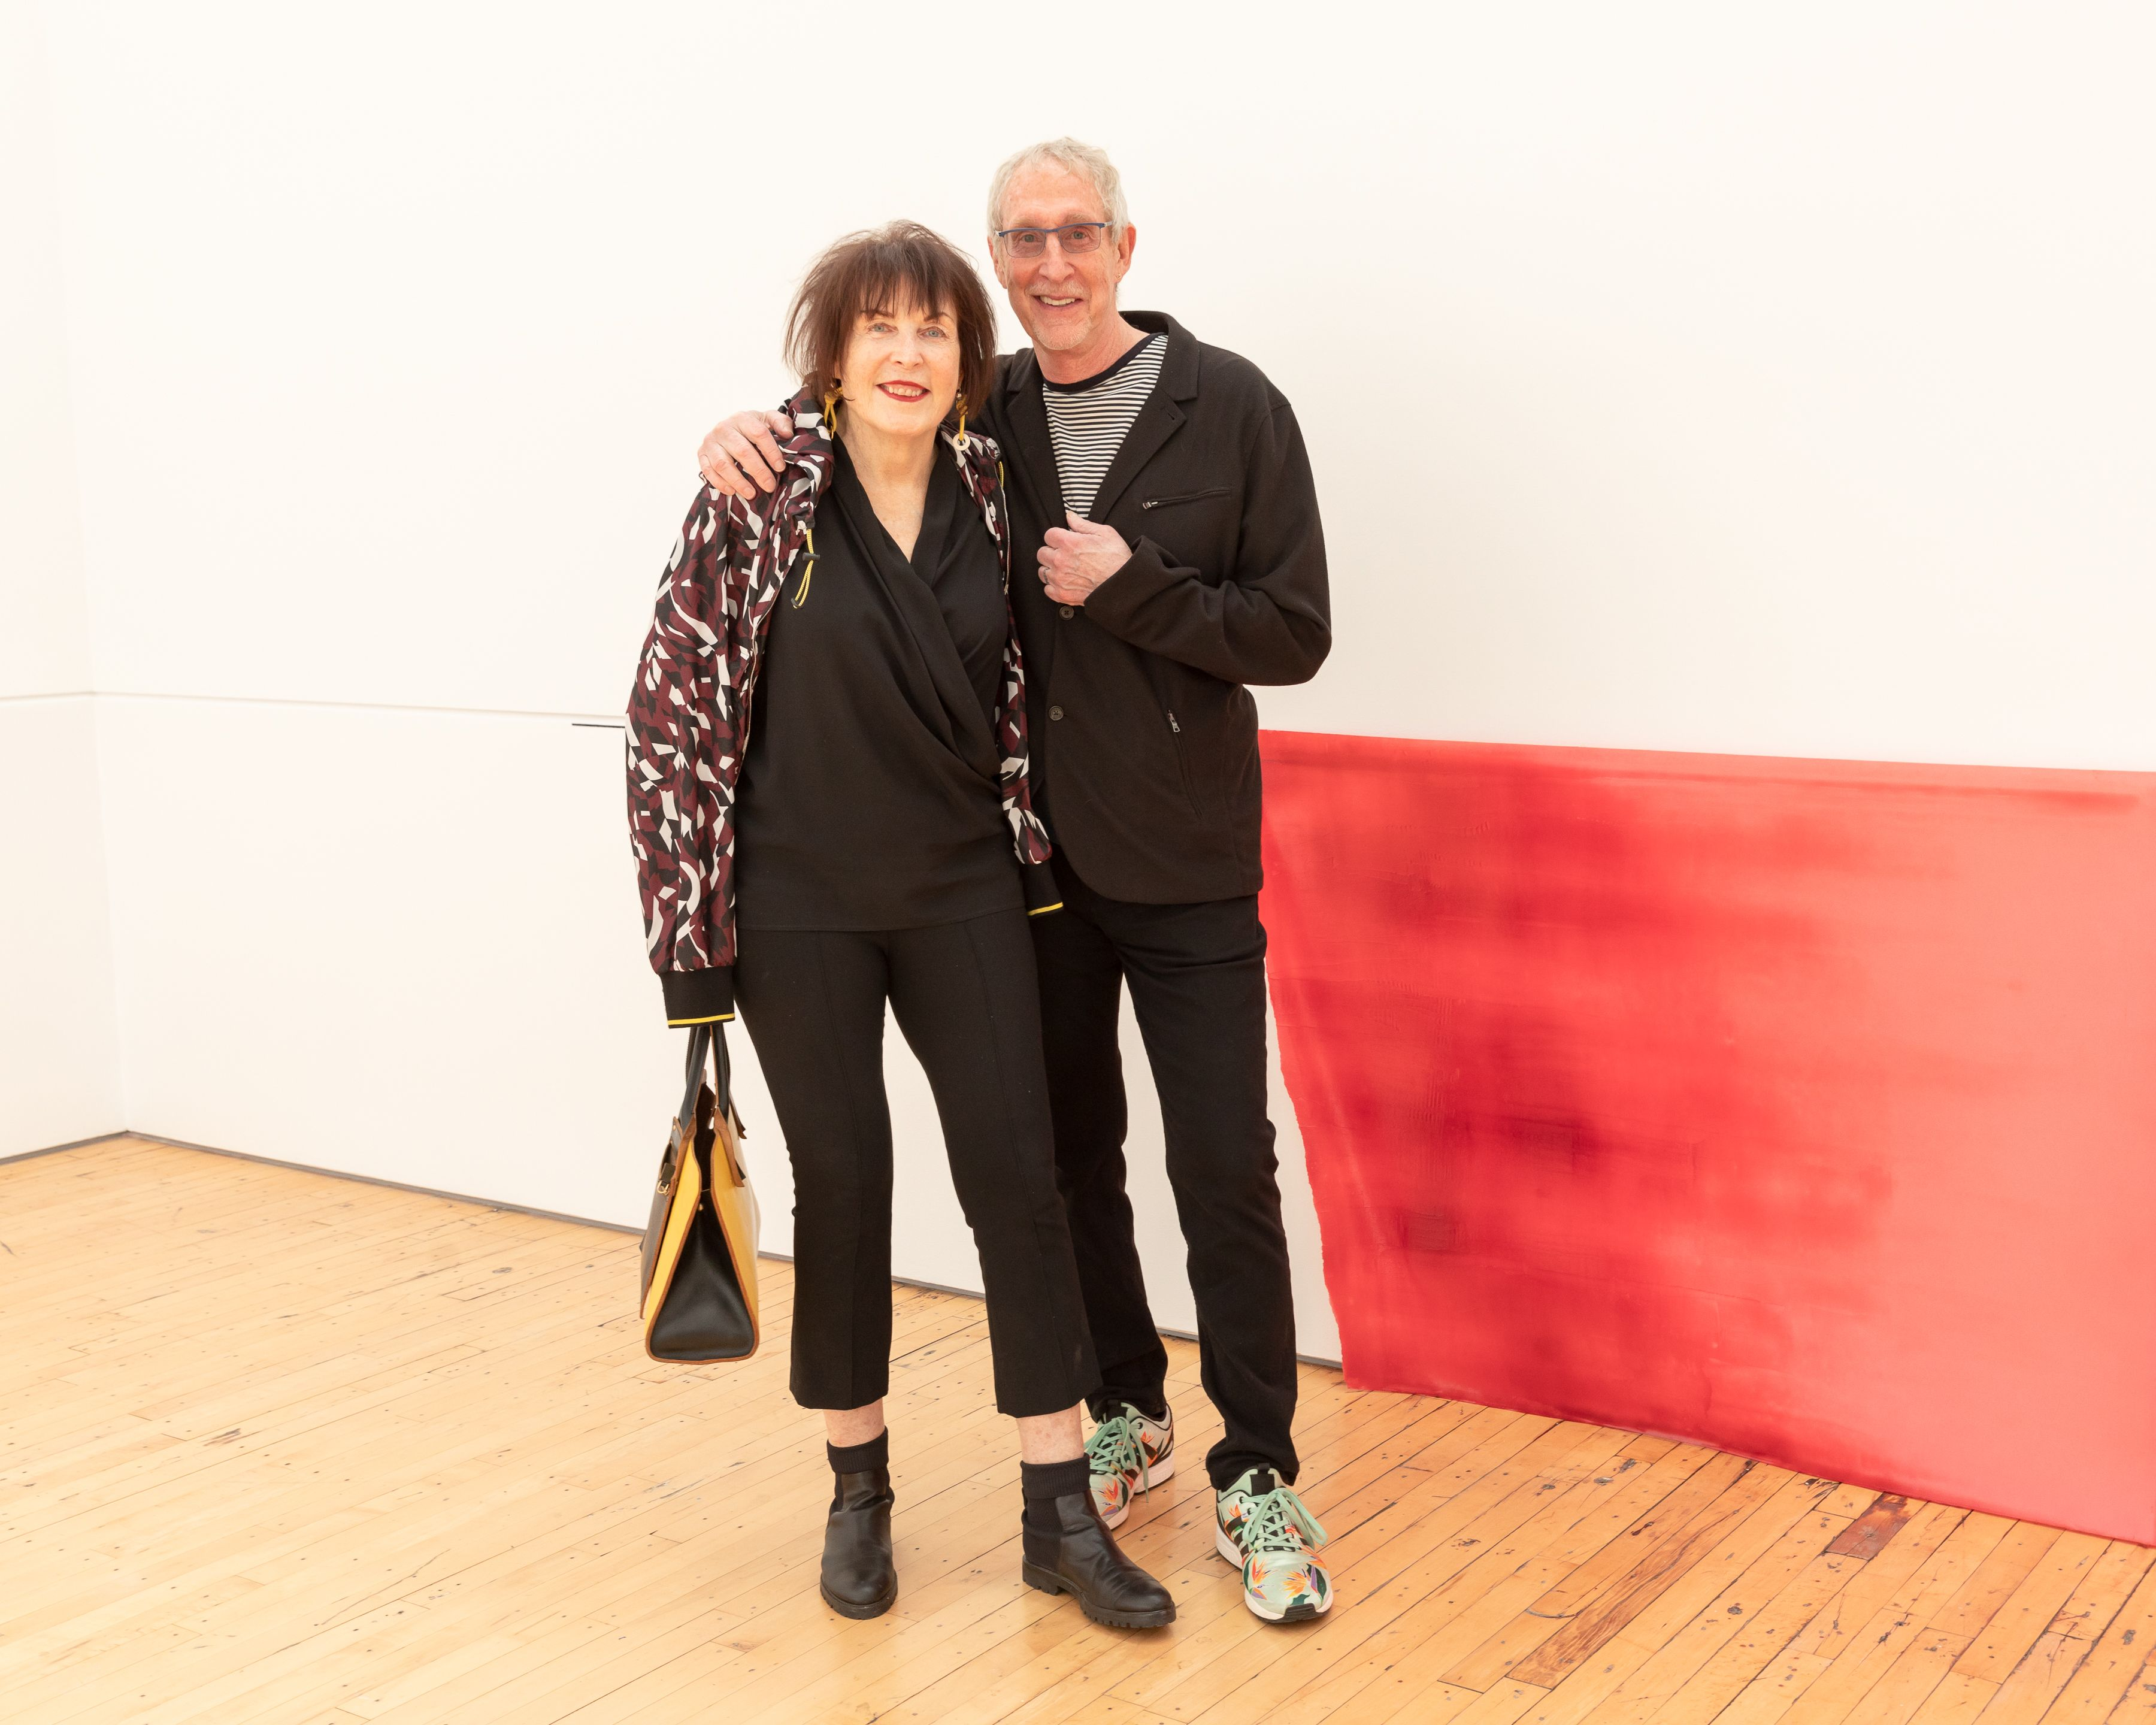 Artist Marilyn Minter and Bill Miller at the 2019 Dia:Beacon Spring Benefit.